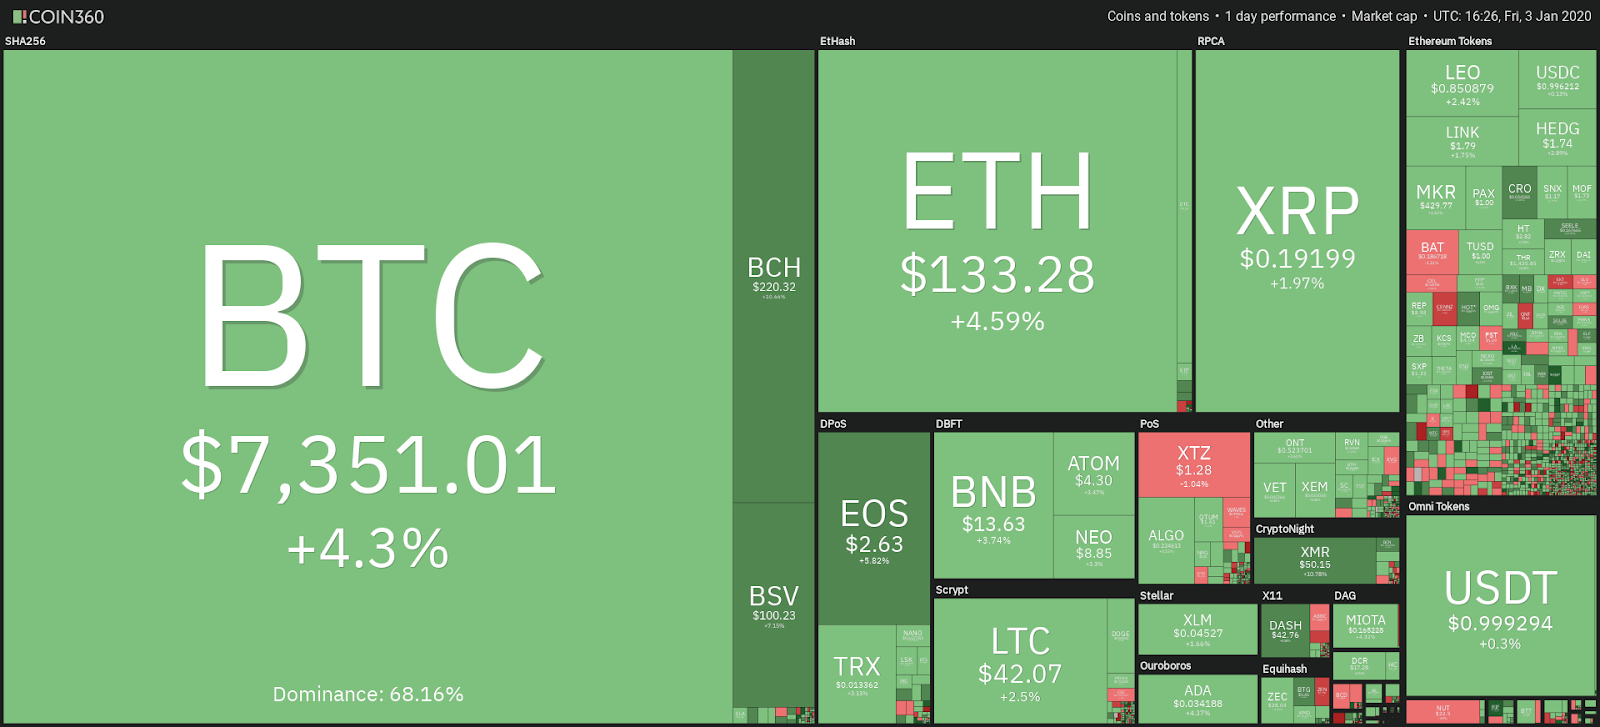 Cryptocurrency market 24-hour view. Source: Coin360